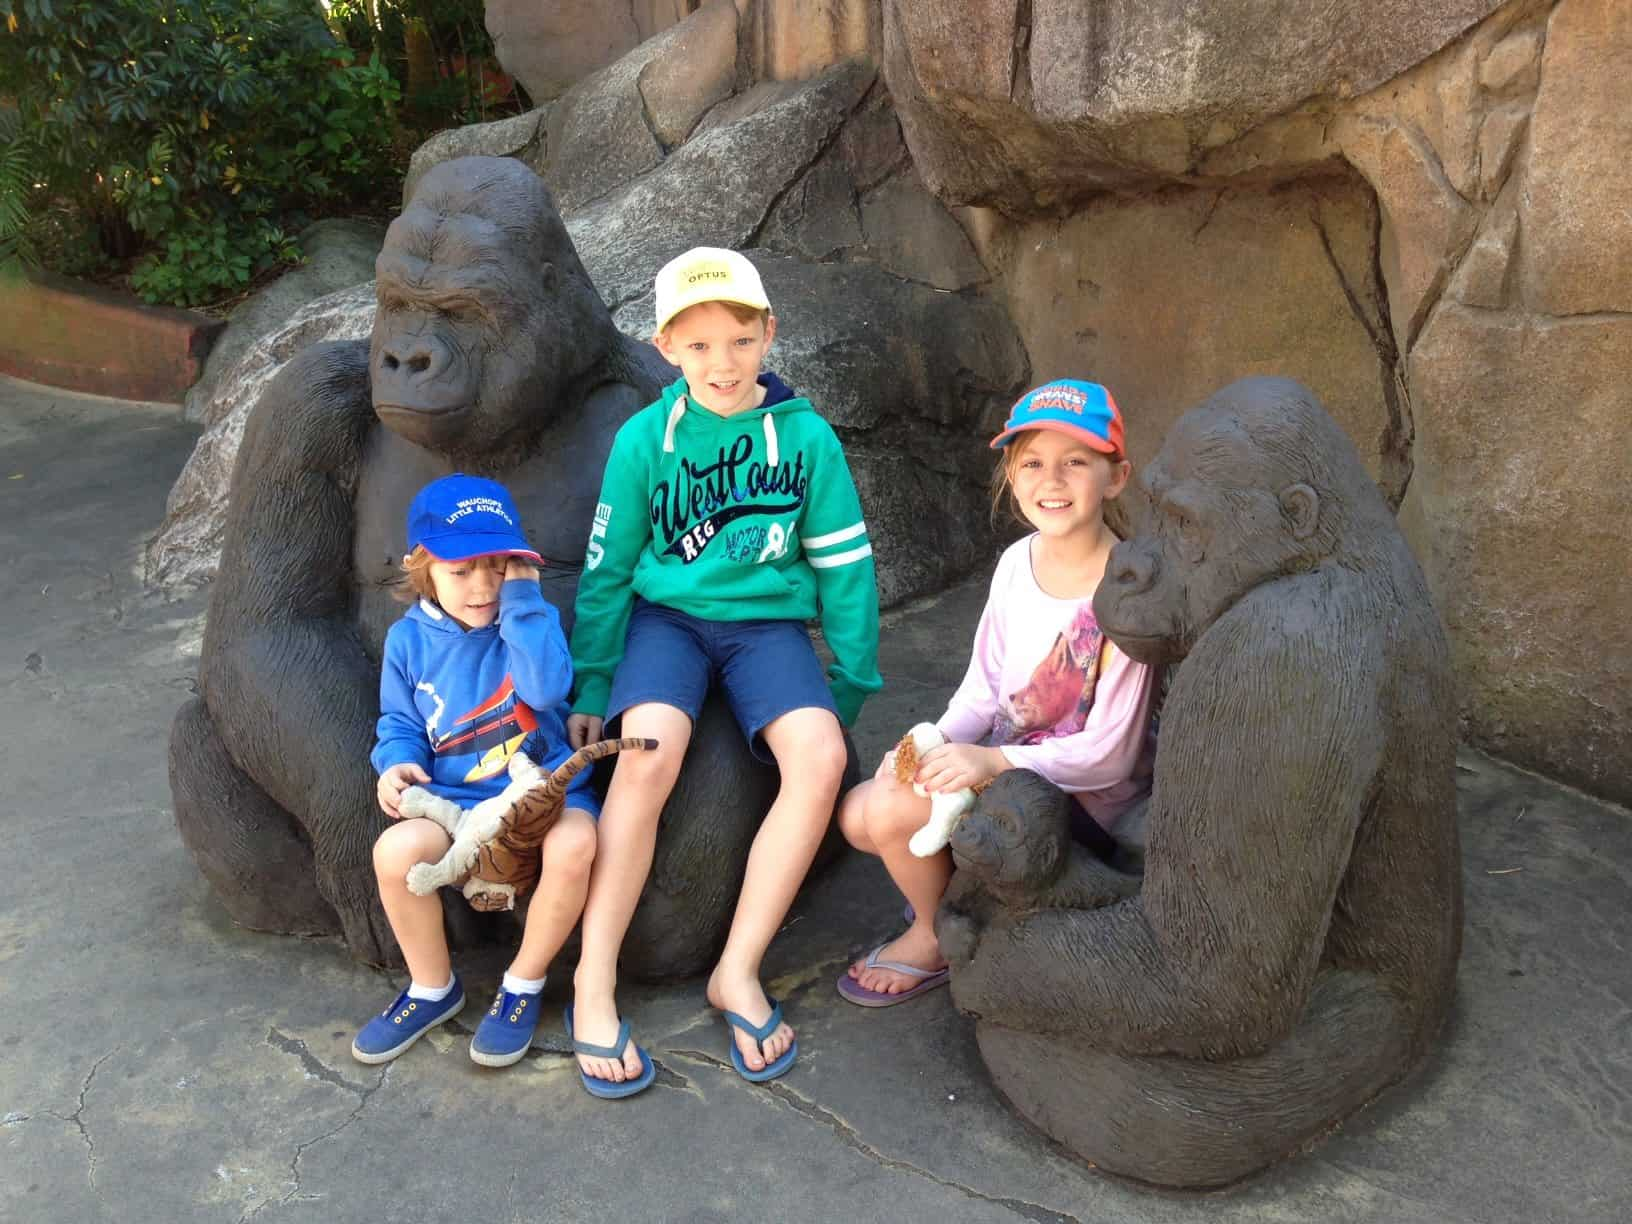 Family Fun in Sydney – Taronga Zoo with Kids